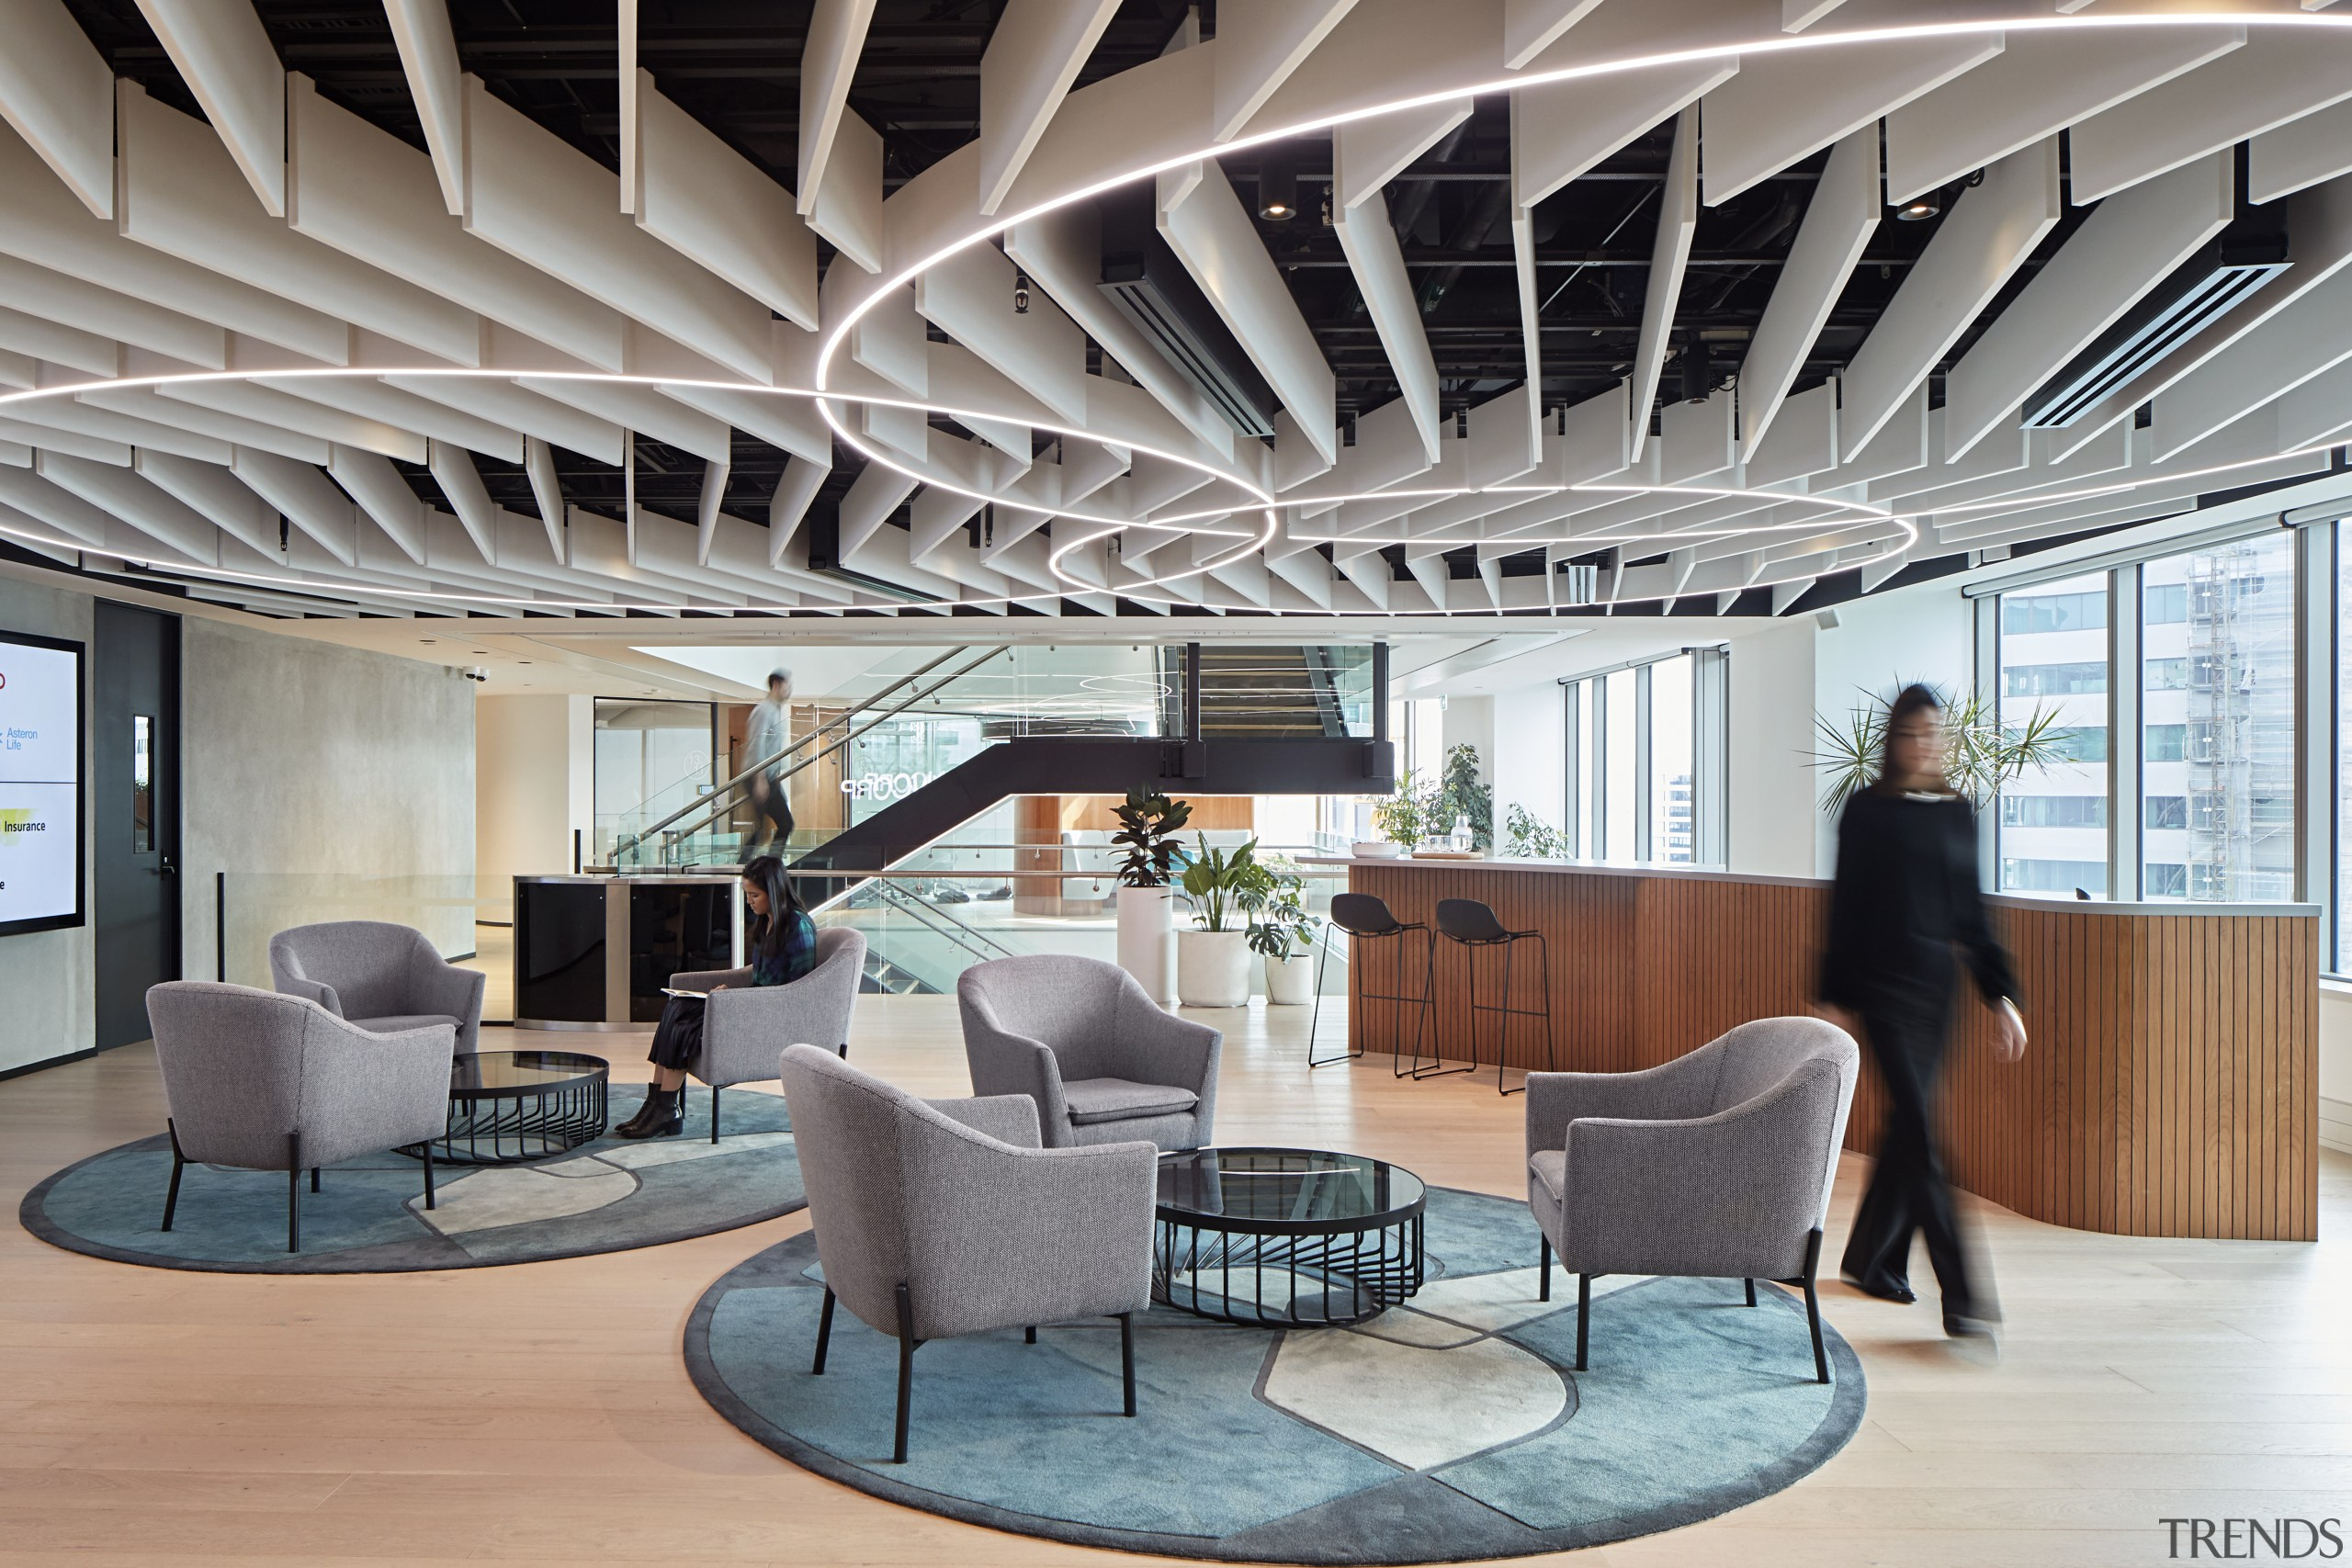 The mid-level of Suncorp's consolidated new five-level premises architecture, ceiling, daylighting, furniture, interior design, lobby, gray